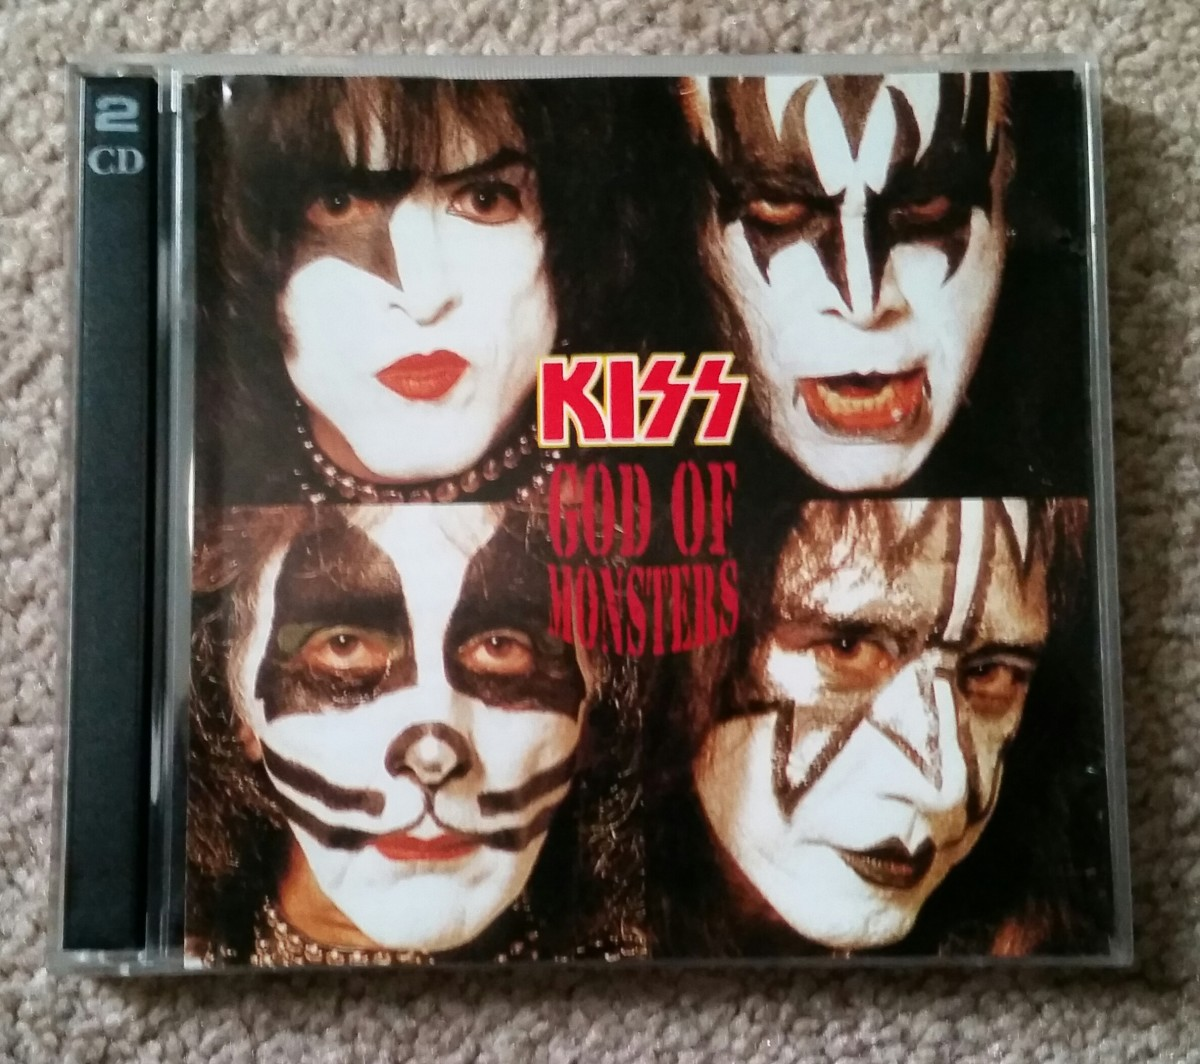 This may be my favorite thrift-store find of all. A live bootleg from KISS' 1996 Reunion Tour. Don't tell Gene Simmons. :)